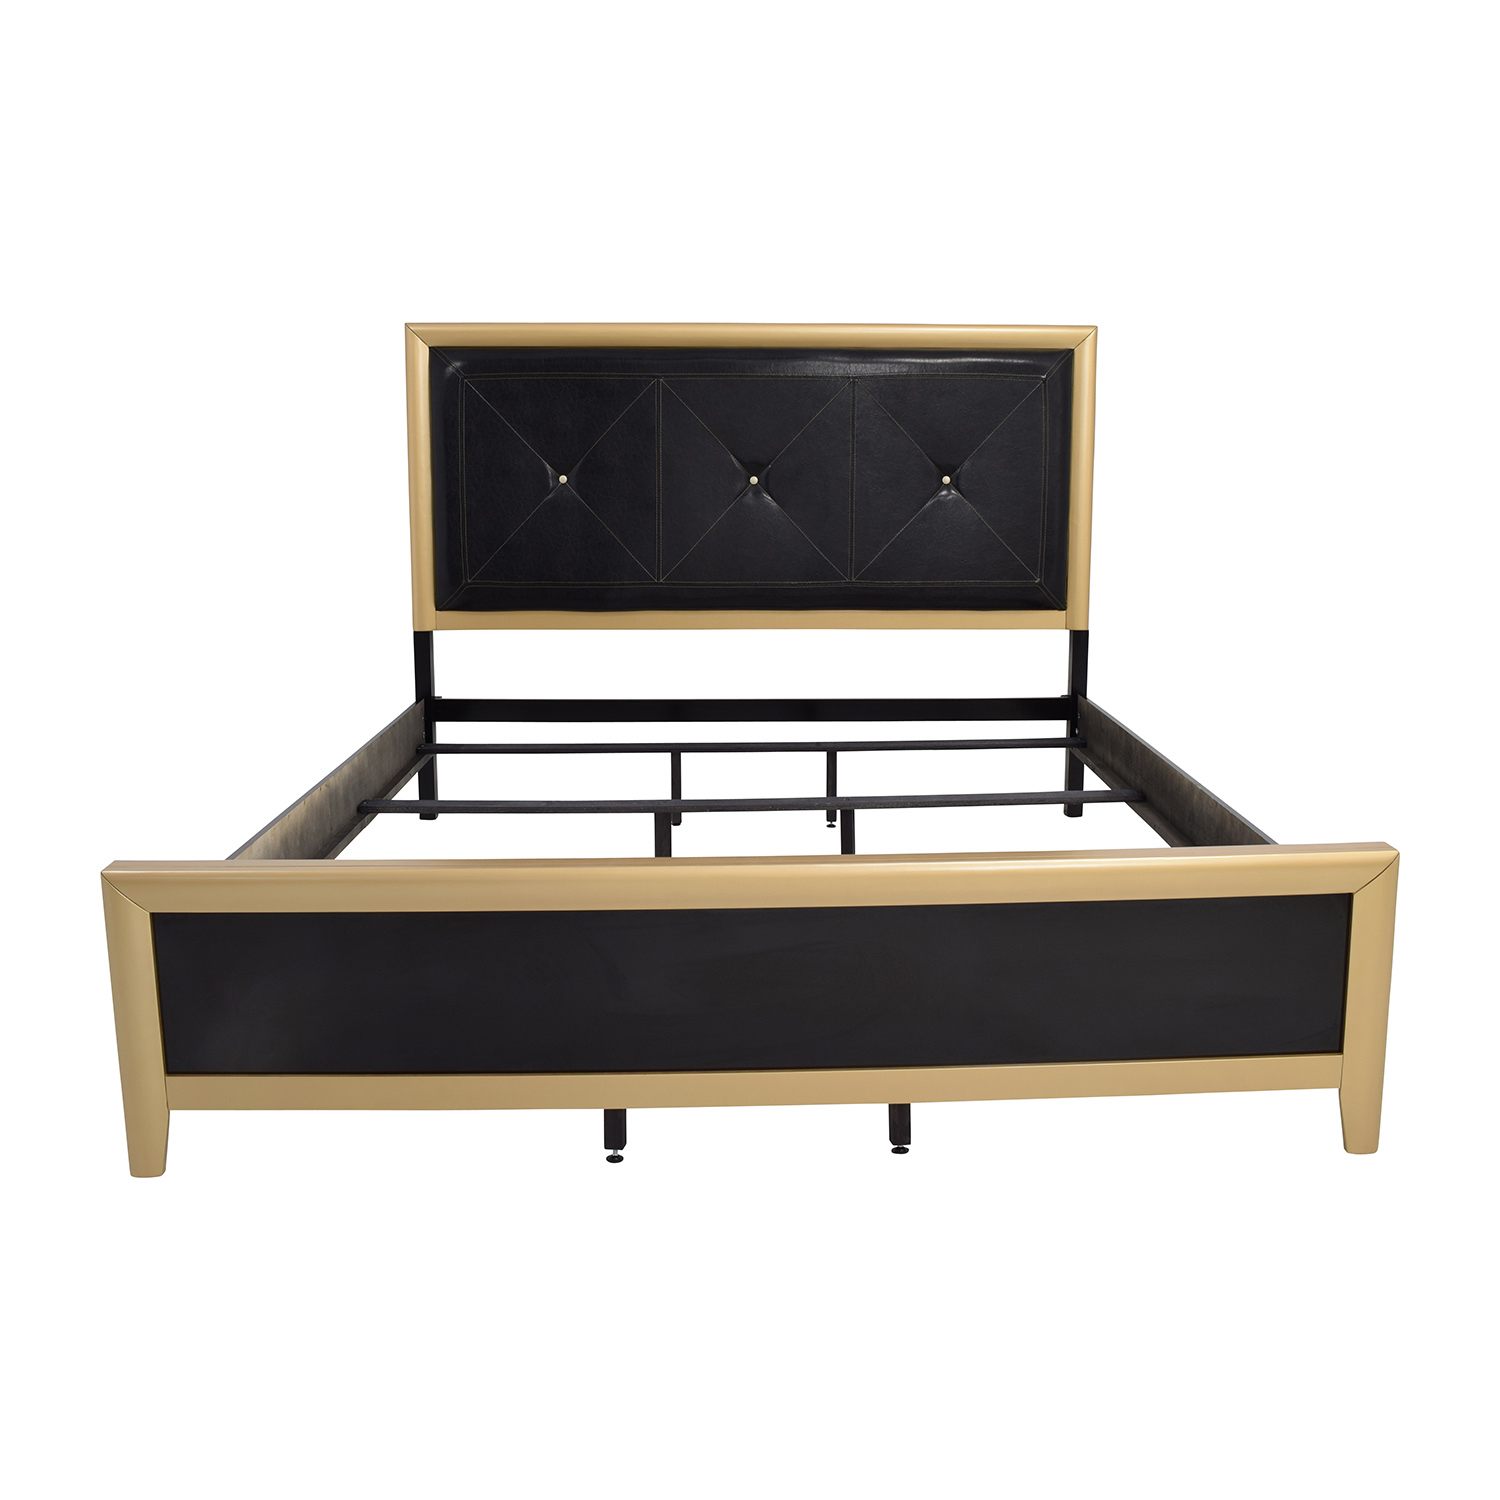 Coaster Furniture Black with Gold and Leather Eastern King Bed / Bed Frames